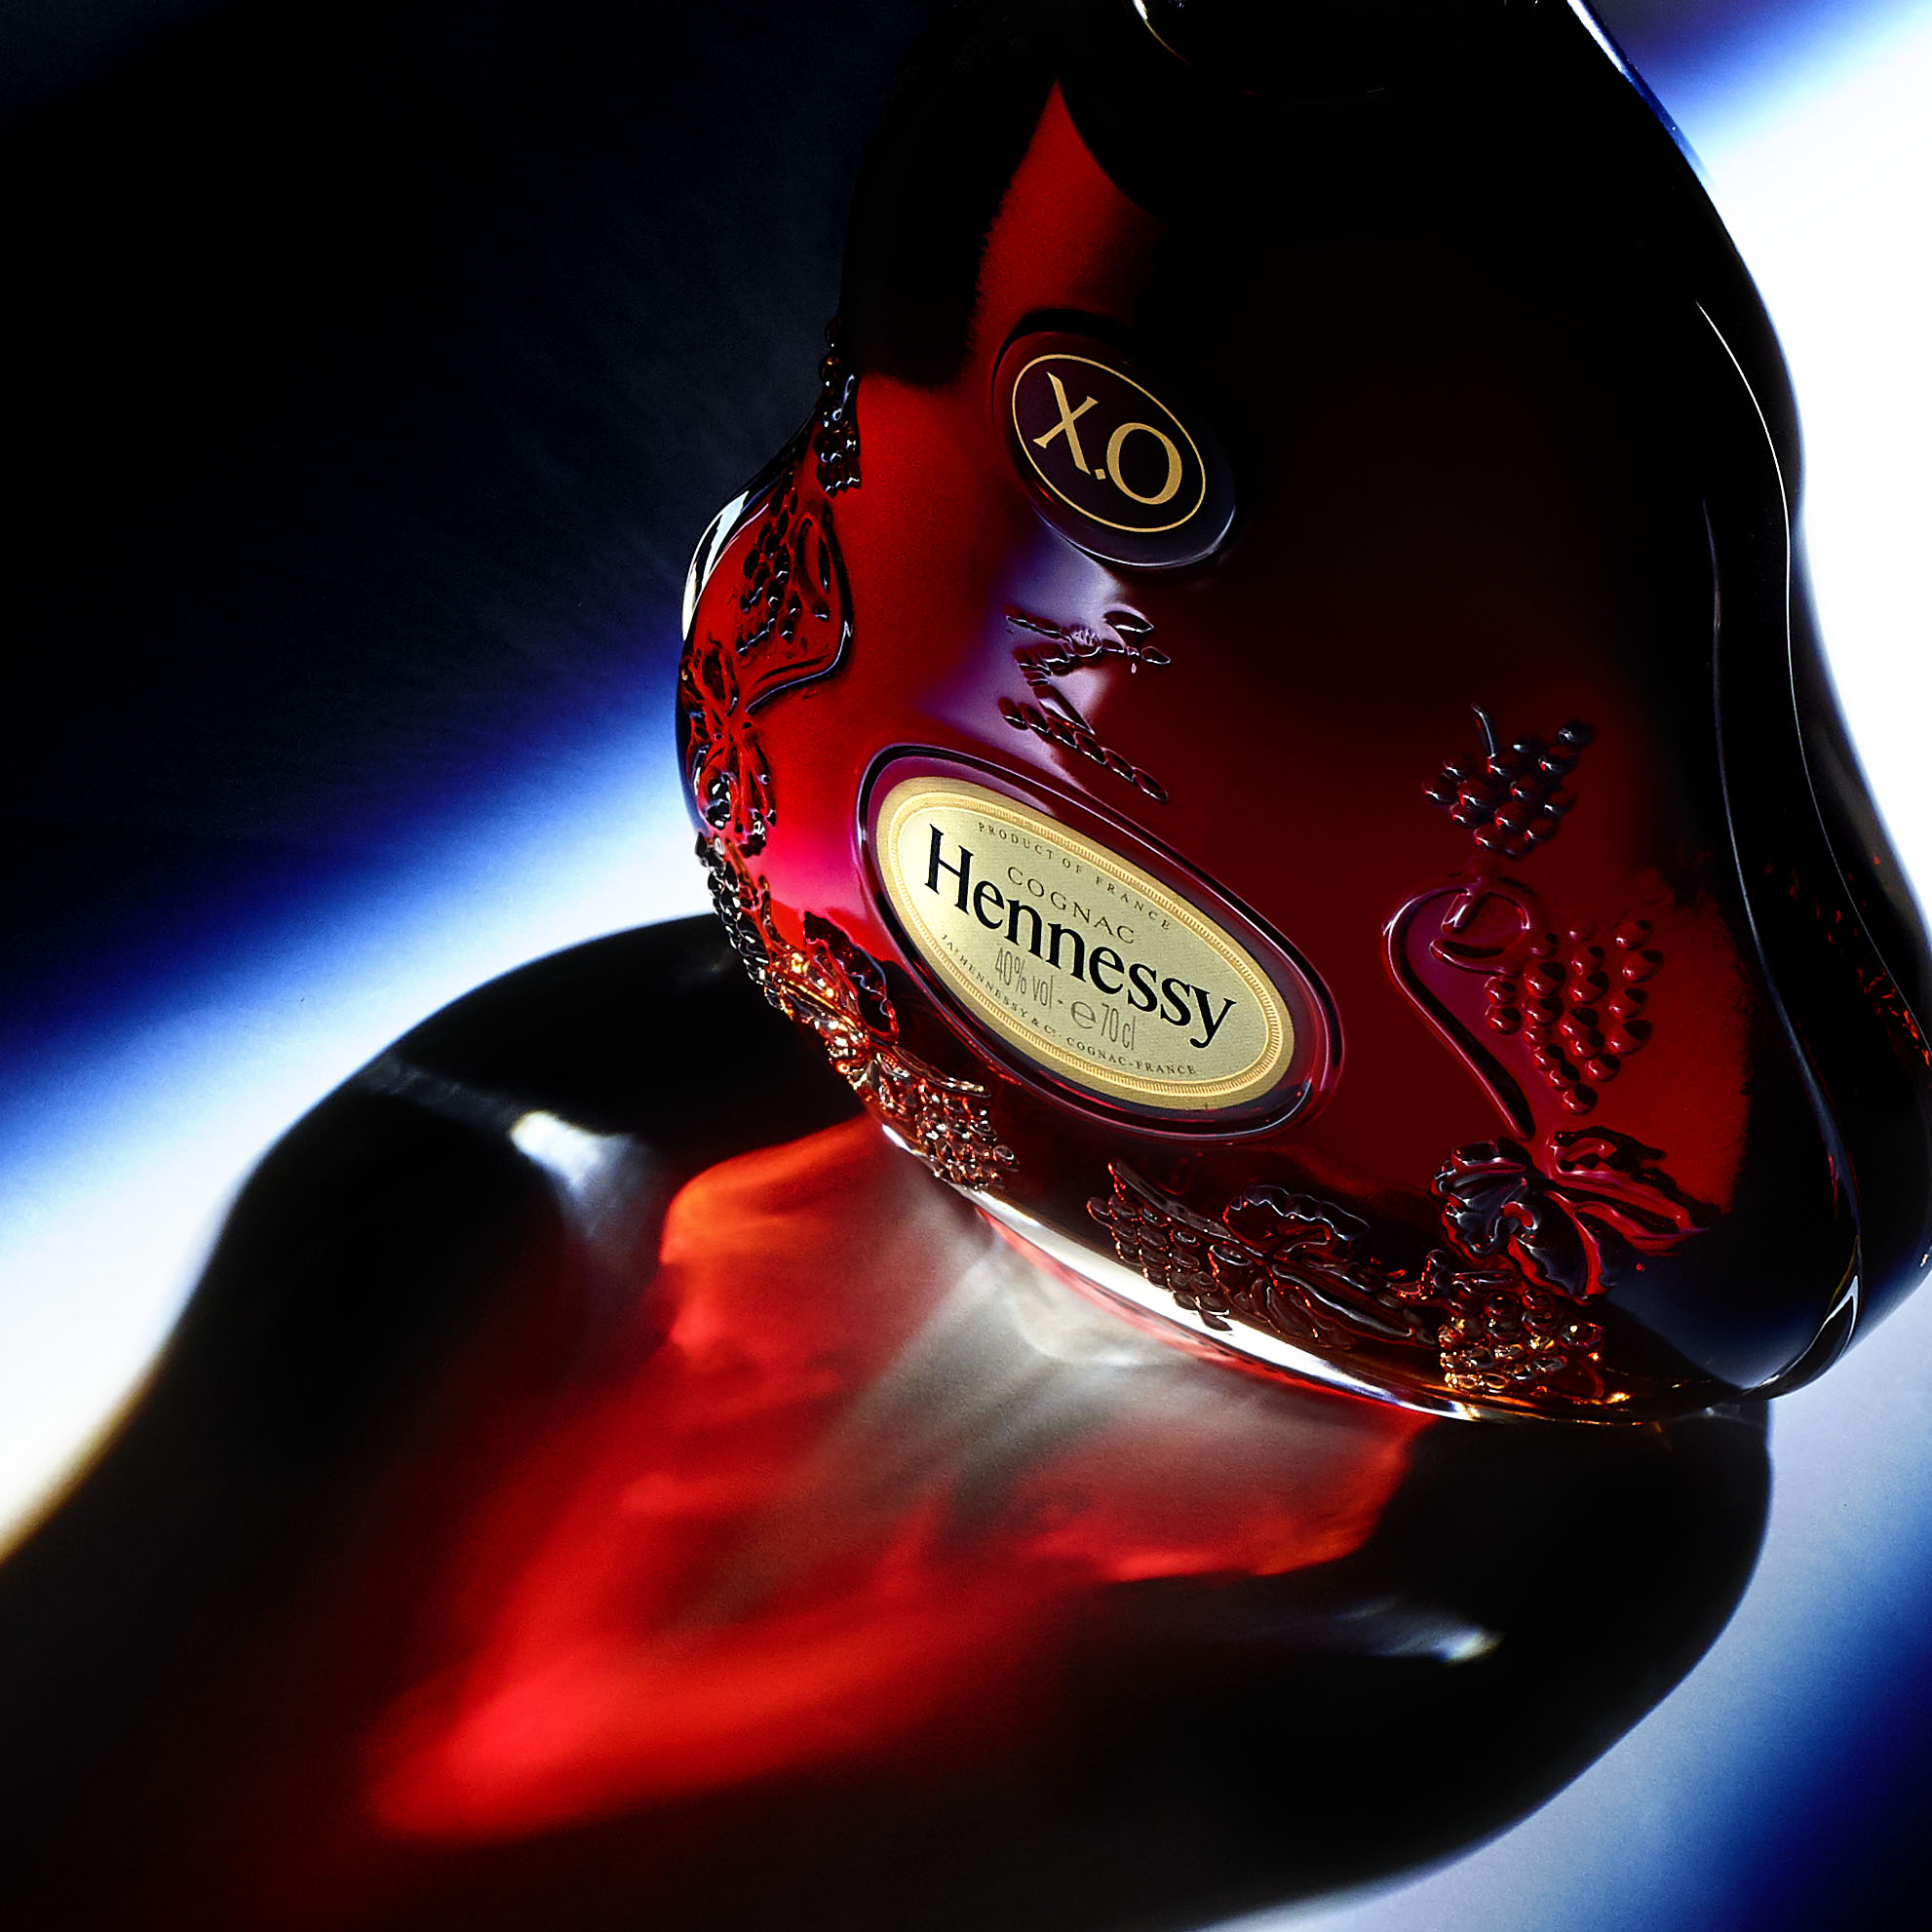 The comeback of Cognac